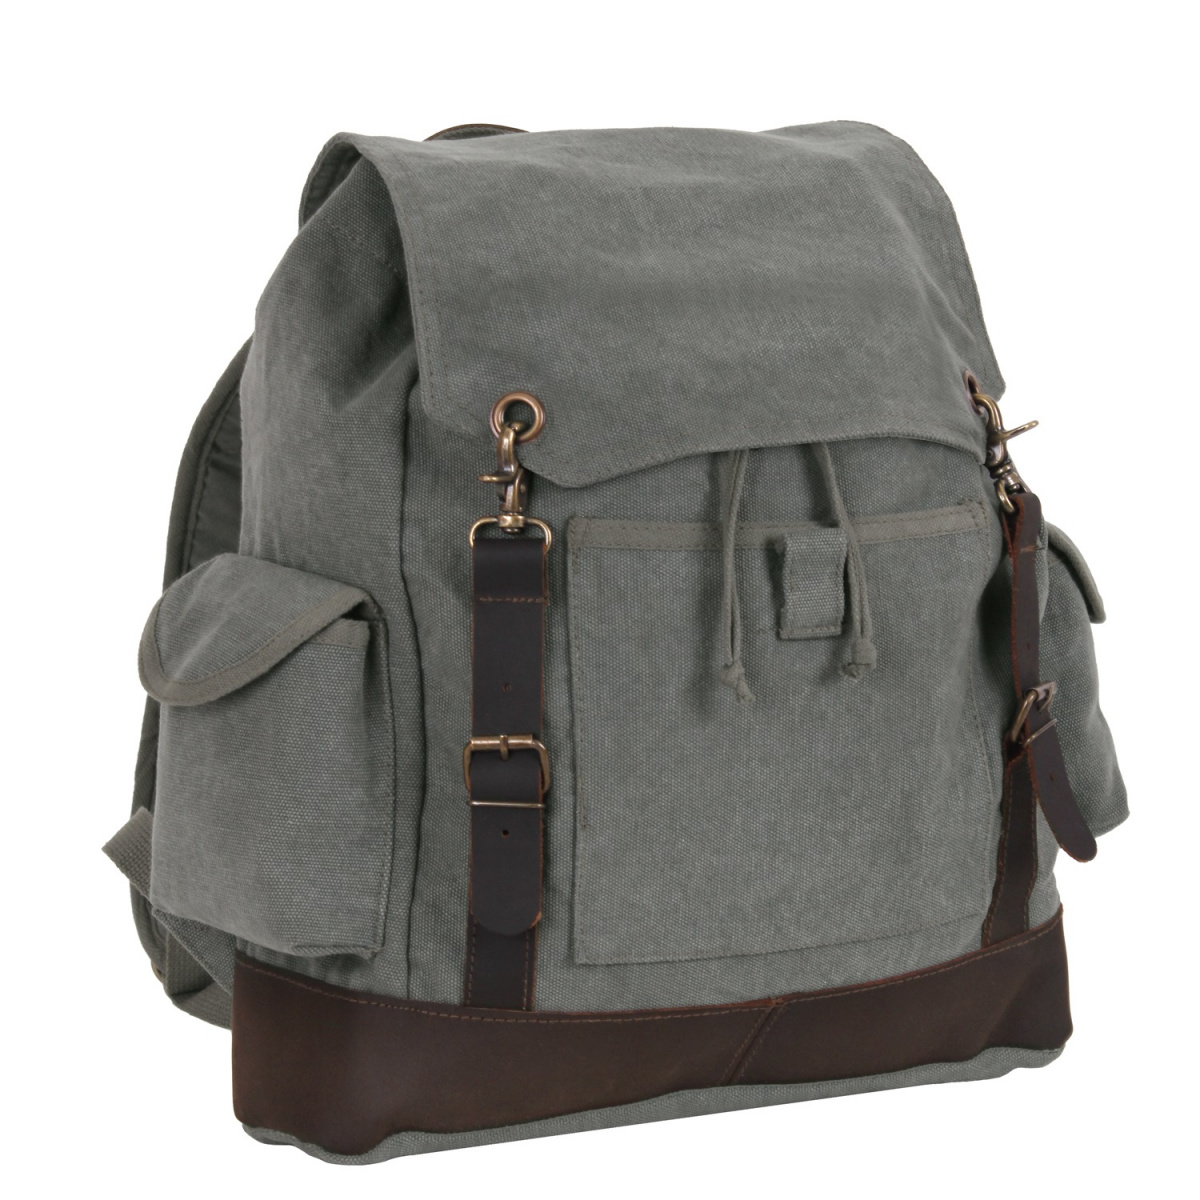 velky 1549310440-batoh-expedition-vintage-charcoal-sedy.jpg 2b9aabb12b